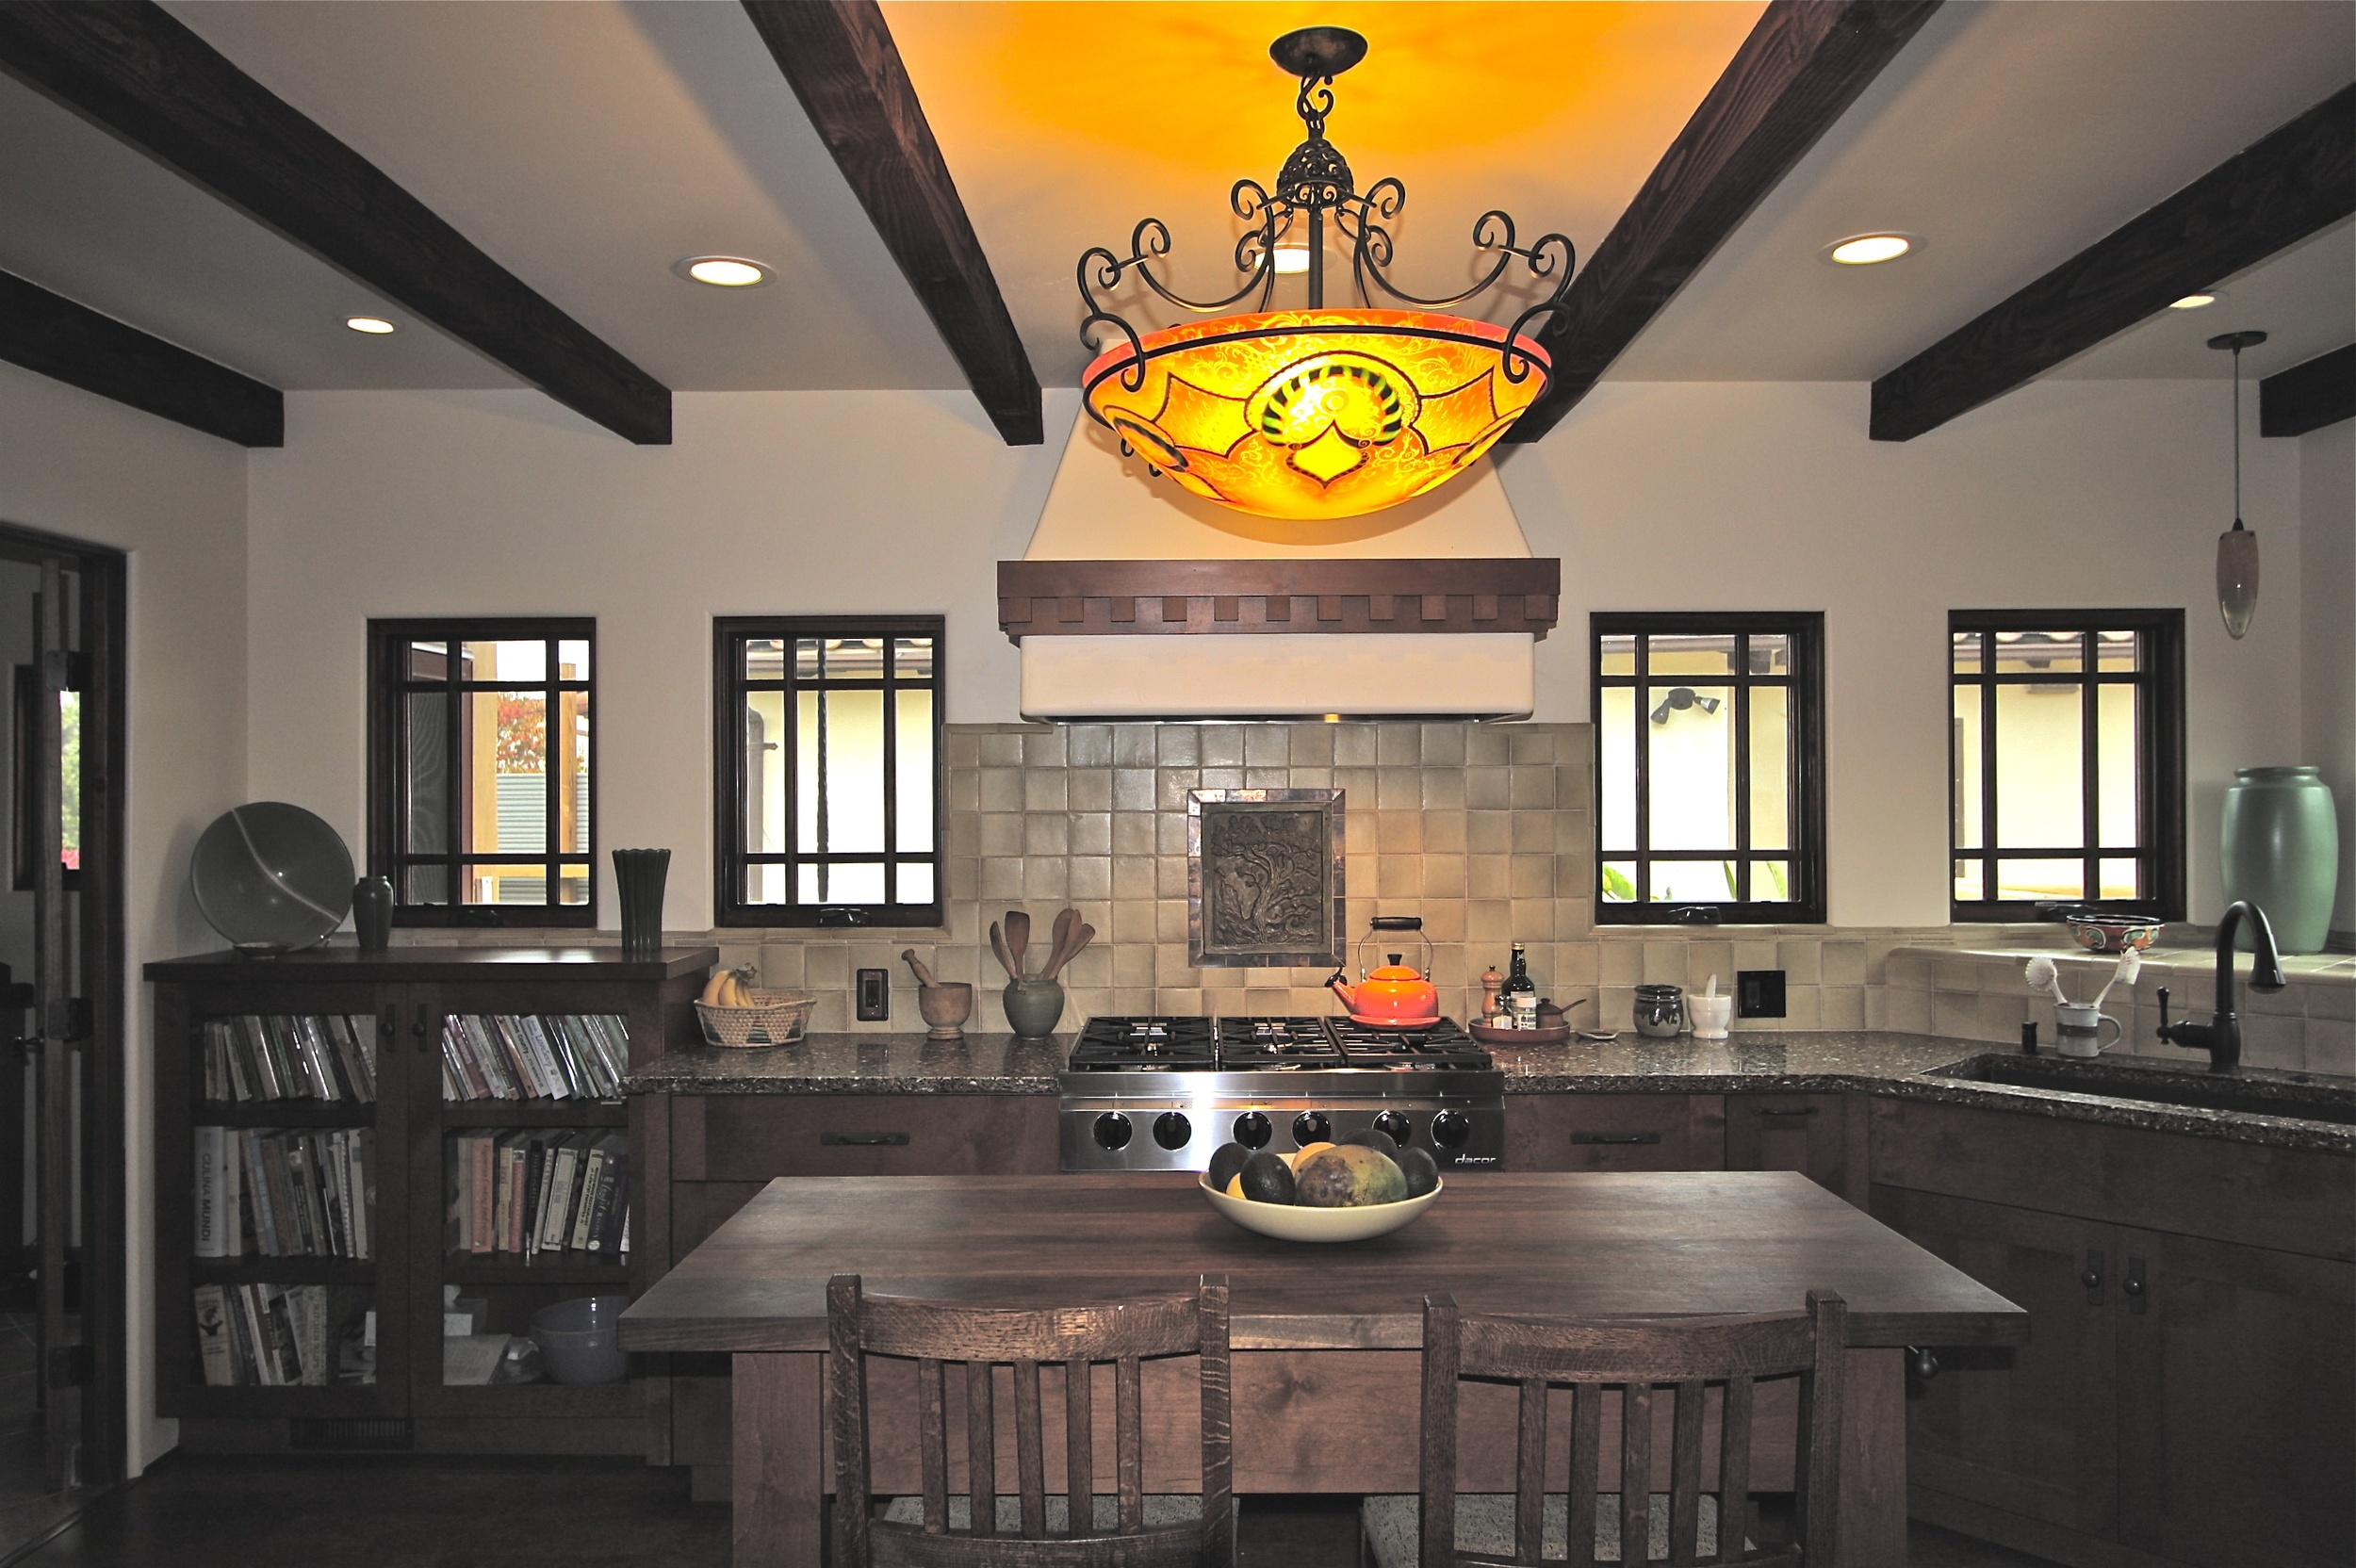 Island table and all custom cabinetry by Artistic Freedom Designs of Vista, CA.